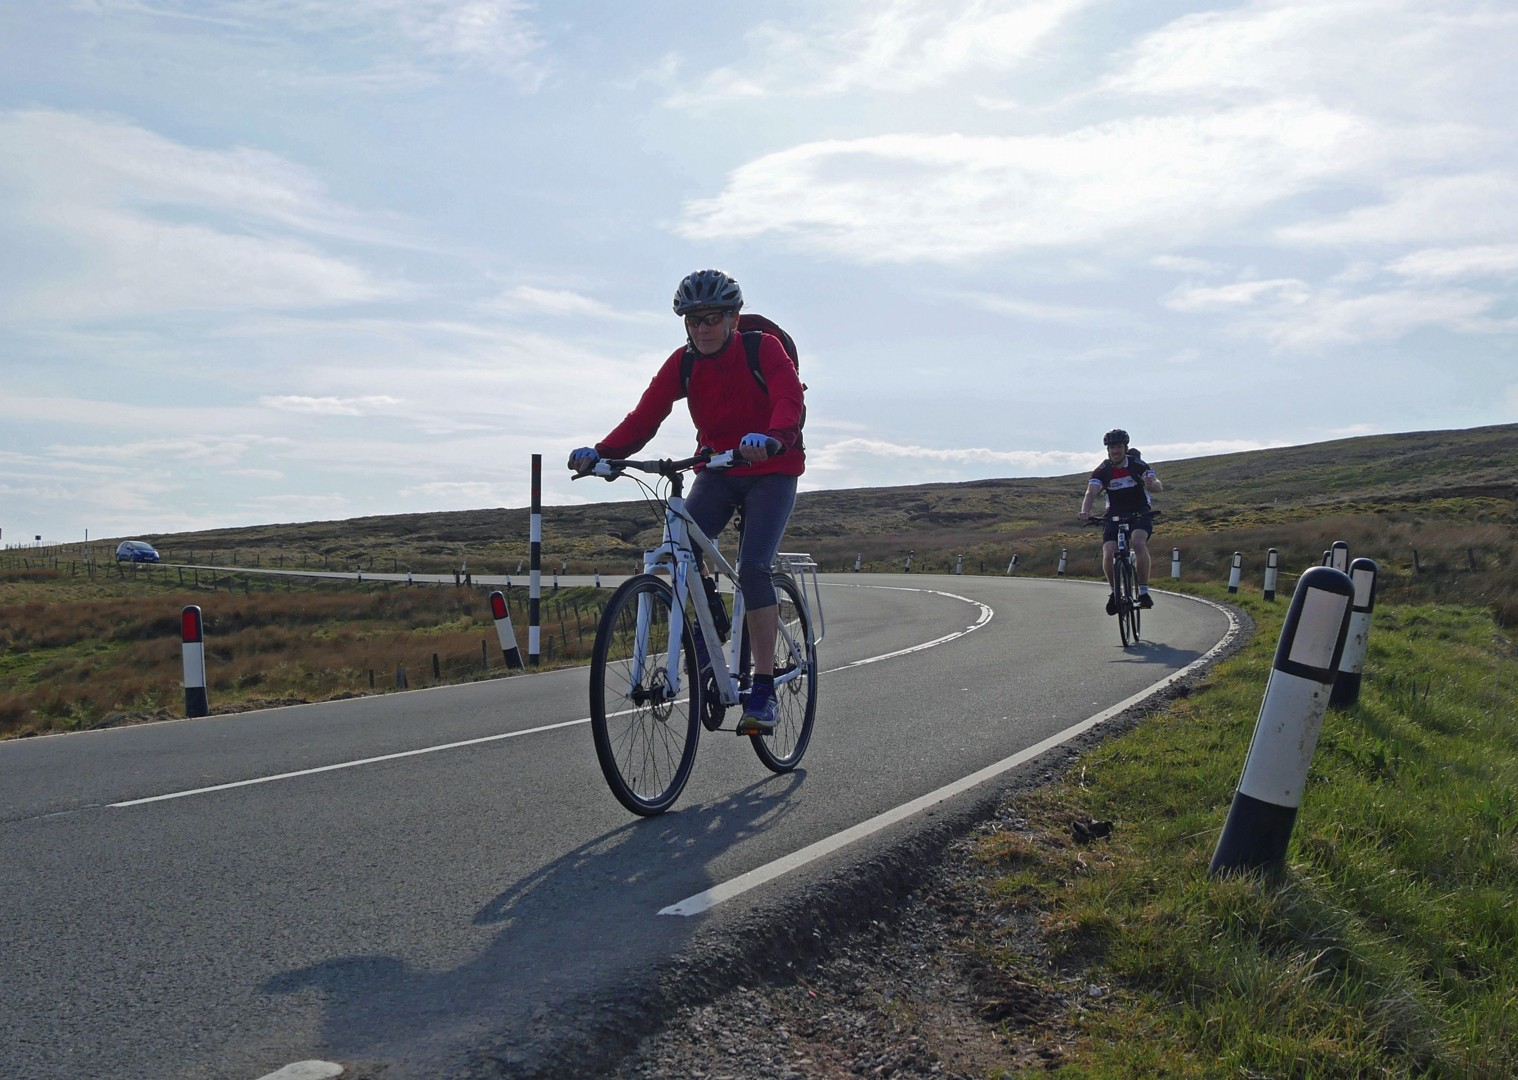 c2c-cycling-cumbria-heartside.jpg - UK - C2C - Coast to Coast - Supported Leisure Cycling Holiday - Leisure Cycling